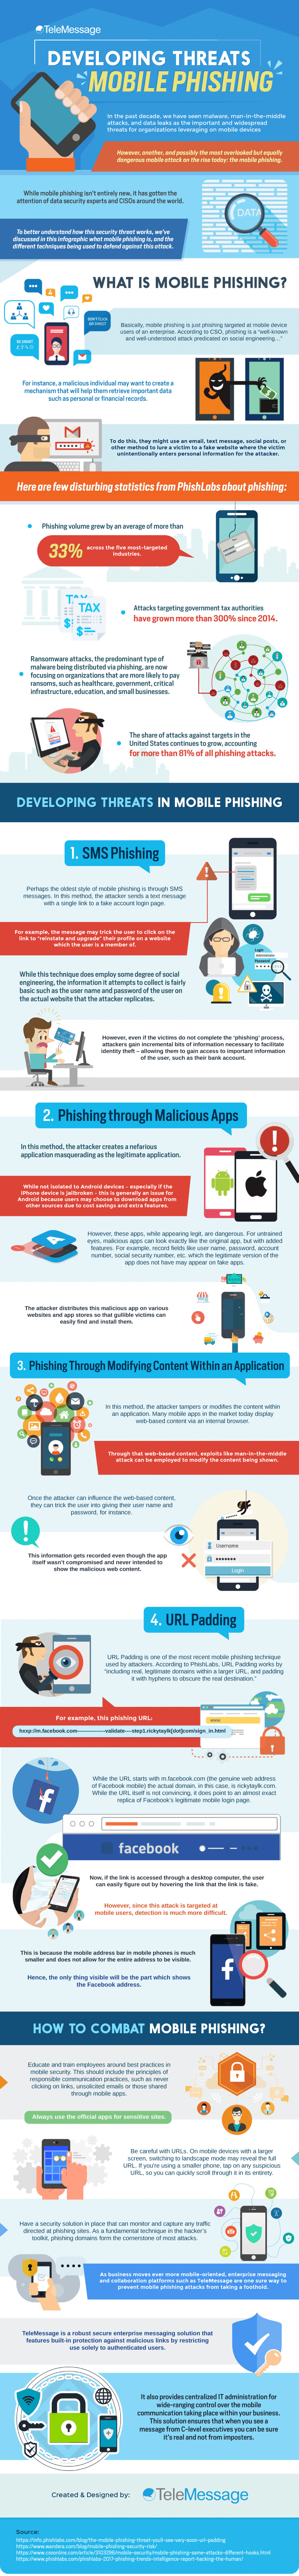 Developing Threats in Mobile Phishing [Infographic]